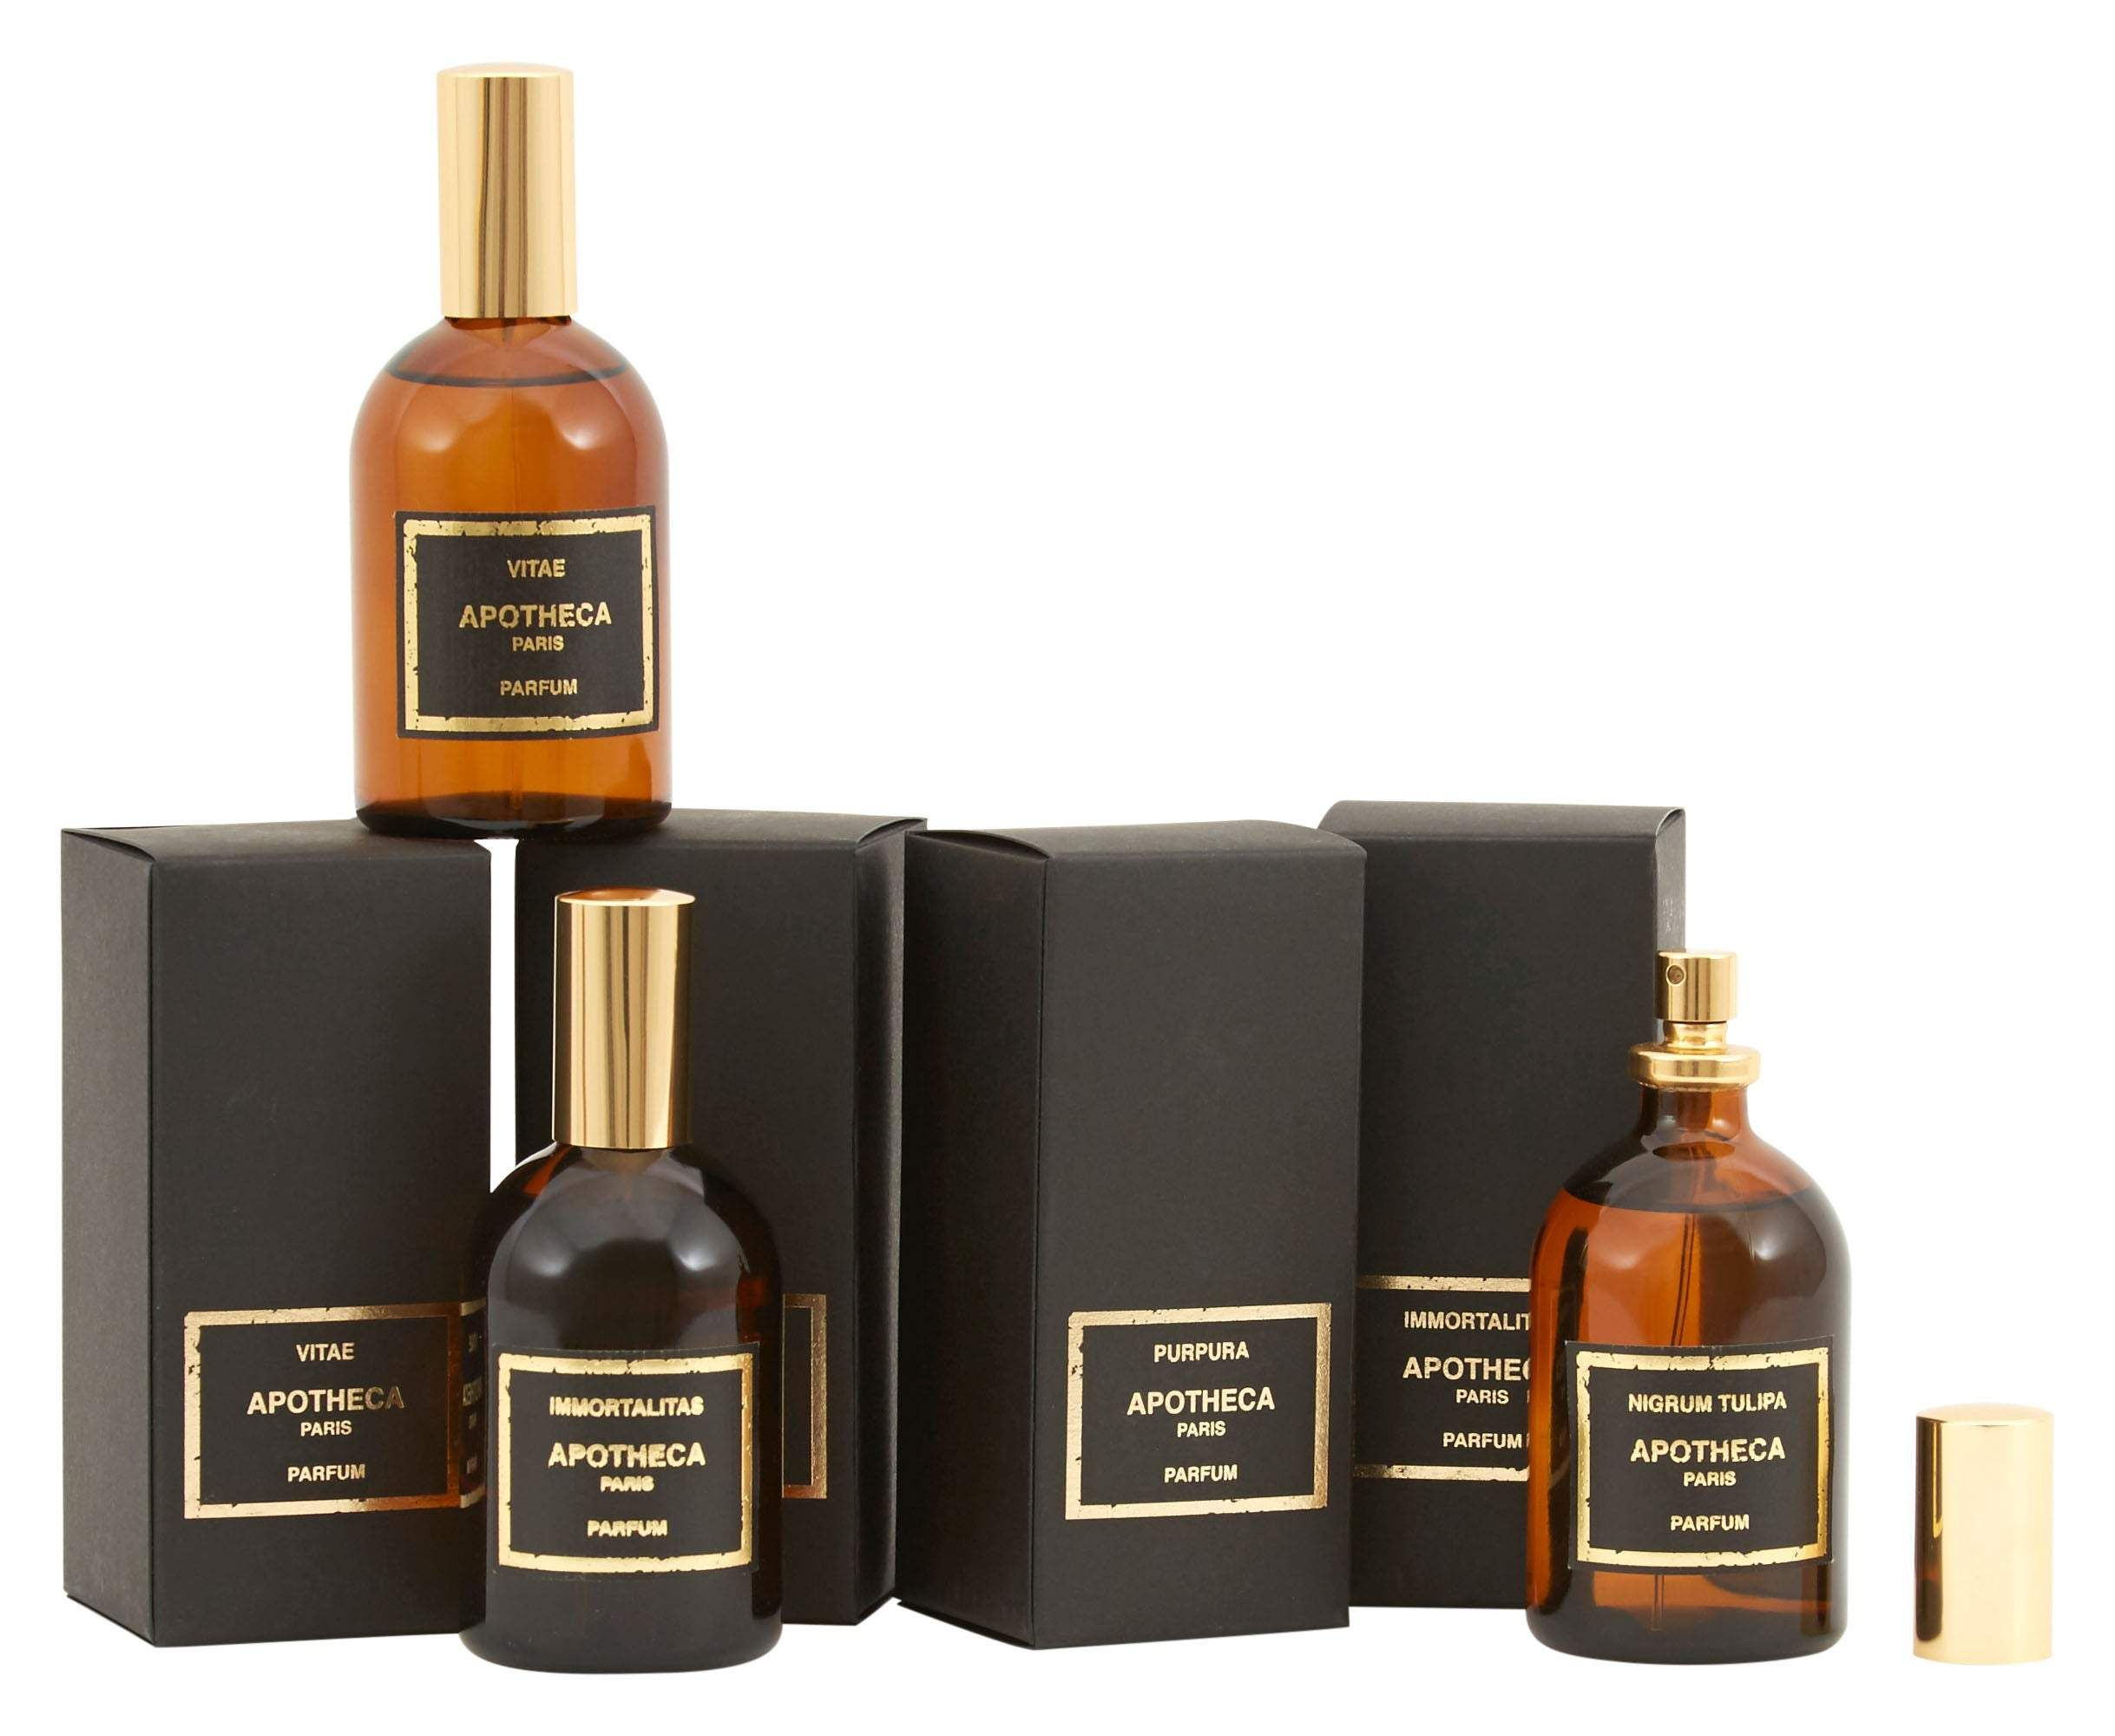 Find your signature scent in our enchanting collection of Apotheca Parfum. Handcrafted in Grasse, France, each of these unisex perfumes is made from a carefully chosen blend of natural fragrance compounds, inspired by memory and mood. Housed in vintage-inspired dark amber glass spray bottles, choose from four nostalgia-evoking scents. •unisex fragrances •scented with a blend of natural fragrance compounds •dark amber glass spray bottle •handmade in Grasse, France Dimensions •2